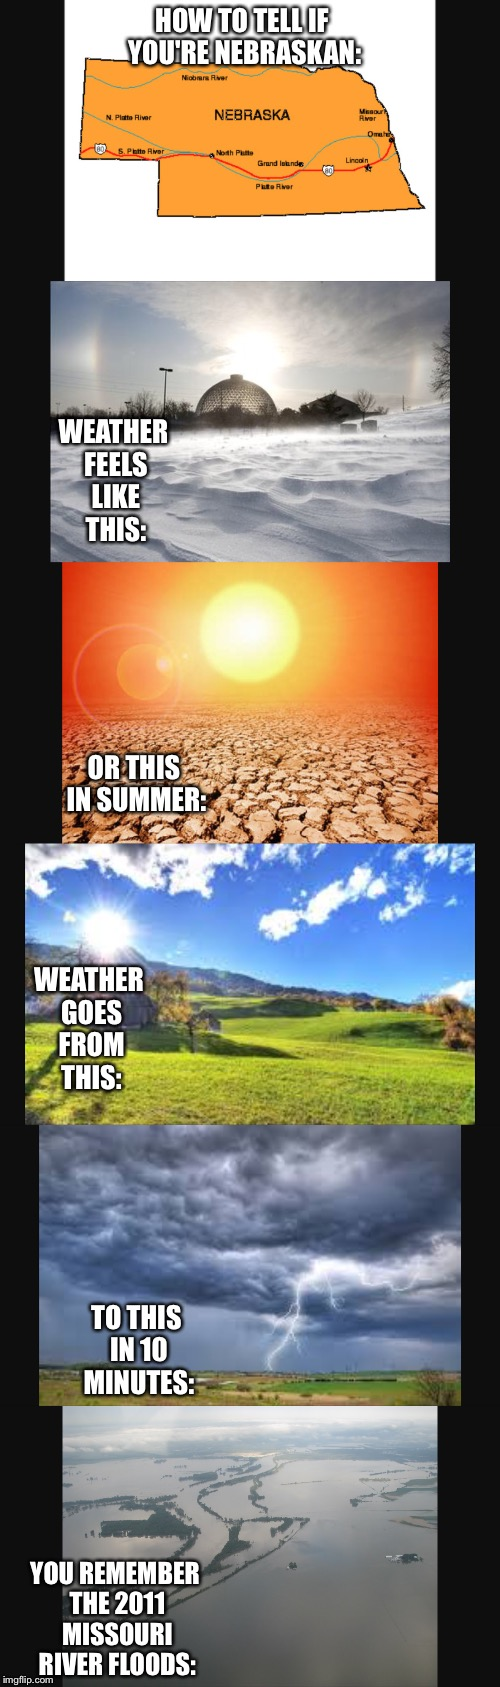 How to tell if you're Nebraskan | HOW TO TELL IF YOU'RE NEBRASKAN: YOU REMEMBER THE 2011 MISSOURI RIVER FLOODS: WEATHER FEELS LIKE THIS: OR THIS IN SUMMER: WEATHER GOES FROM  | image tagged in nebraska,omaha,weather | made w/ Imgflip meme maker